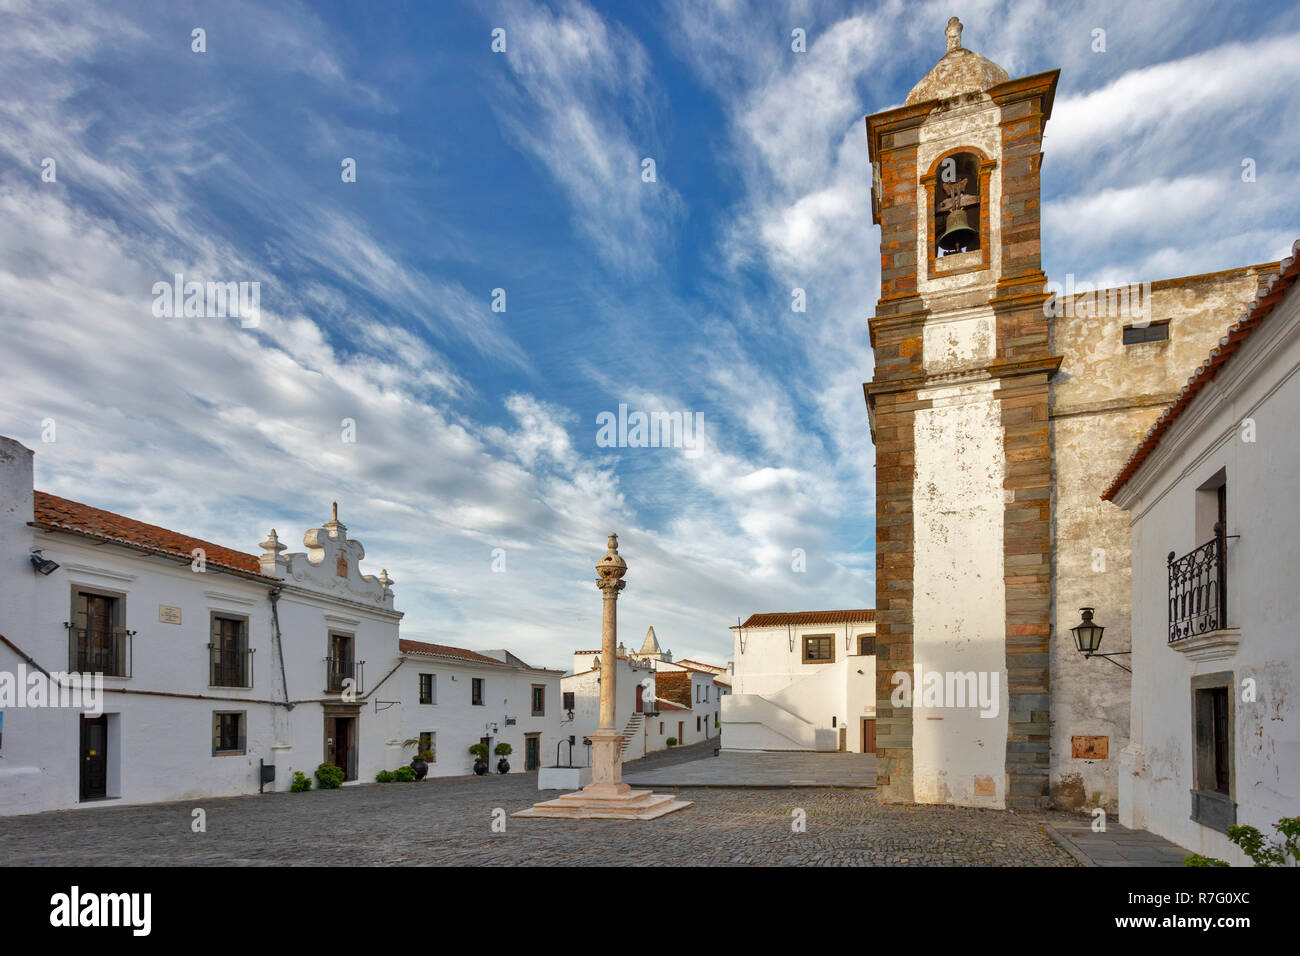 Oldtown with church Santa Maria da Lagoa, Monsaraz, Alentejo, Portugal - Stock Image